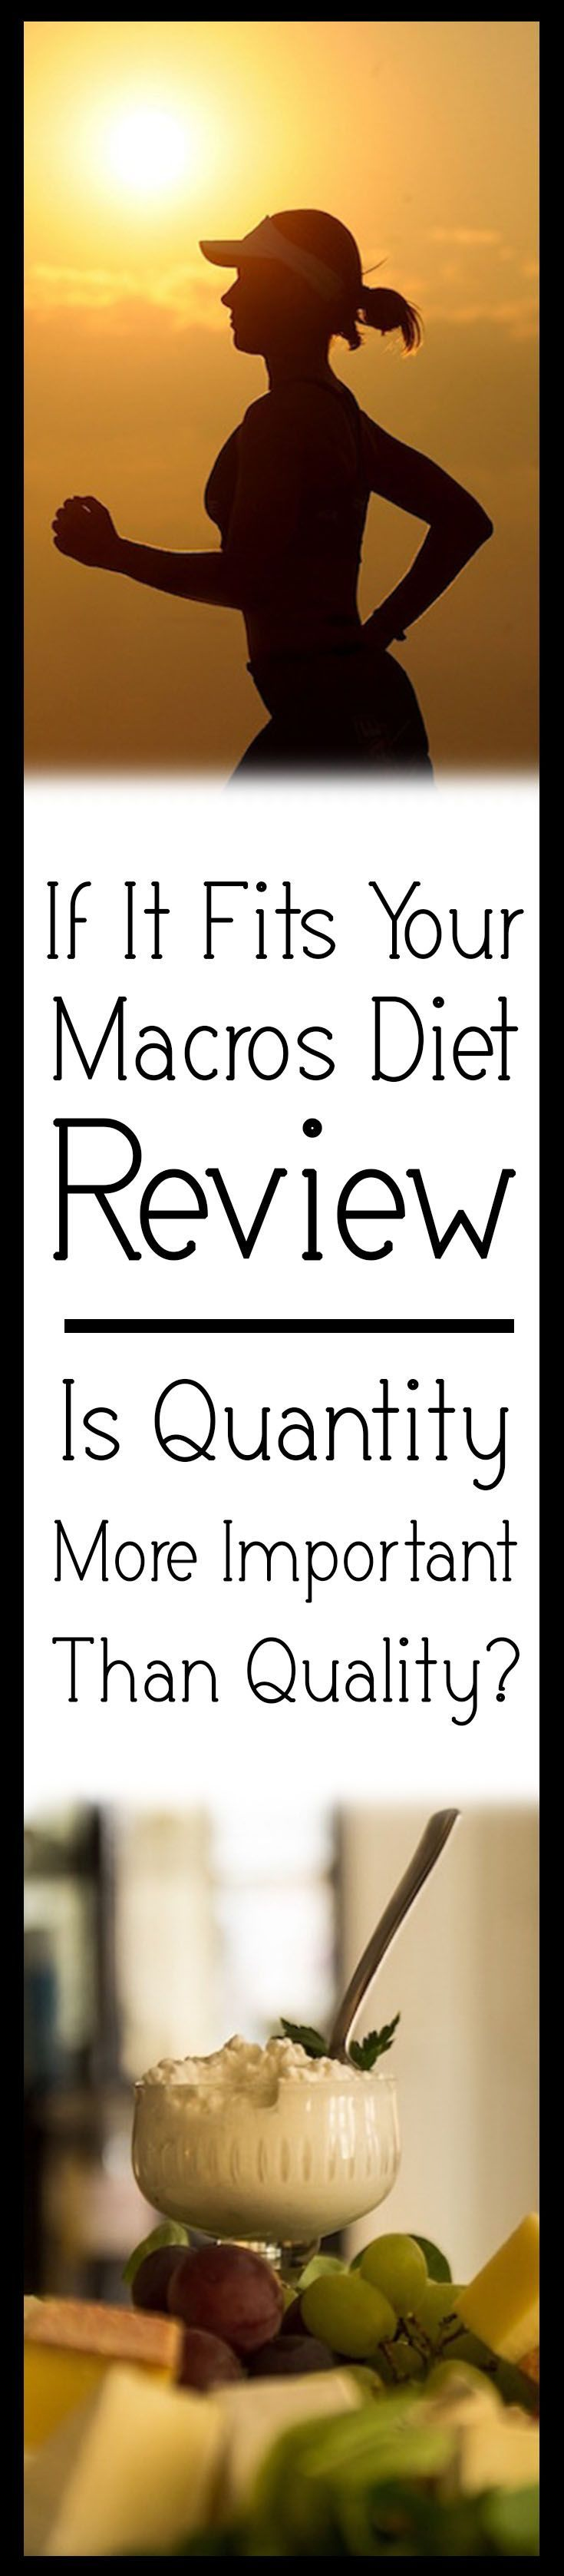 If It Fits Your Macros (IIFYM) or flexible dieting is a diet trend in the bodybuilding and weight loss industry. We discuss the pros, cons and controversy.